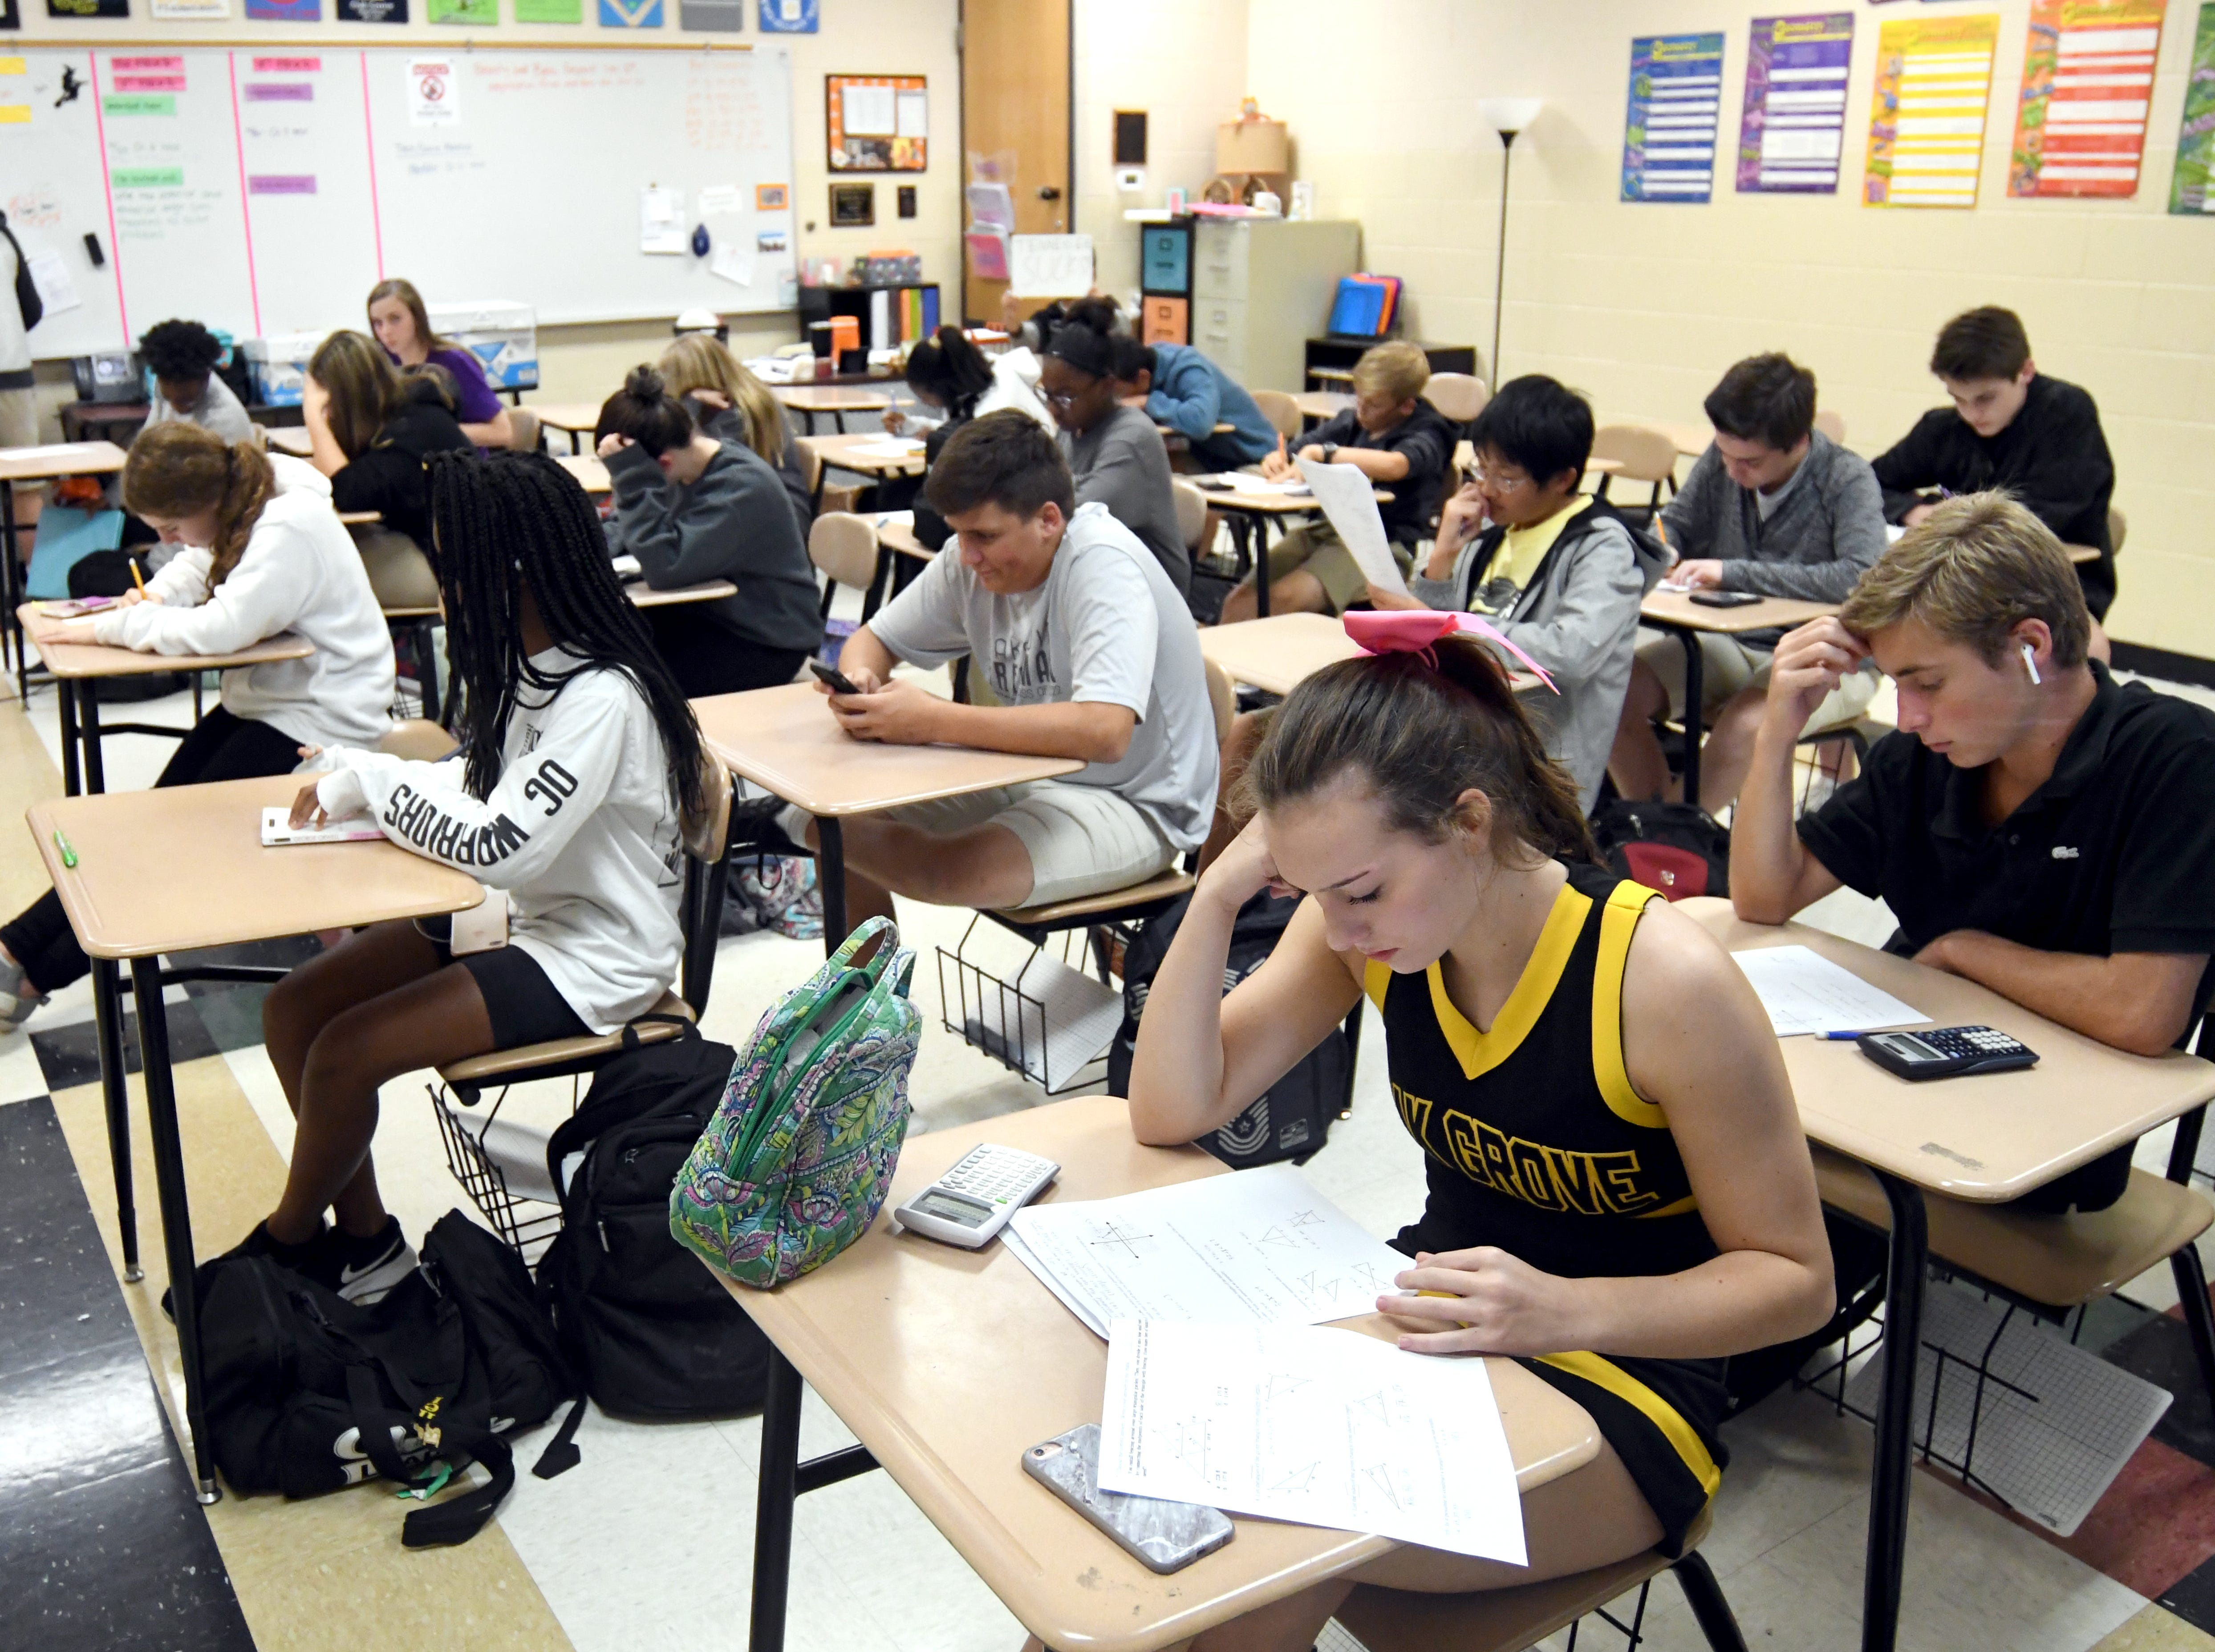 Students concentrate during a geometry exam at Oak Grove High School. Oak Grove High School is No. 3 in state in accountability rankings and No. 1 in 6A schools.